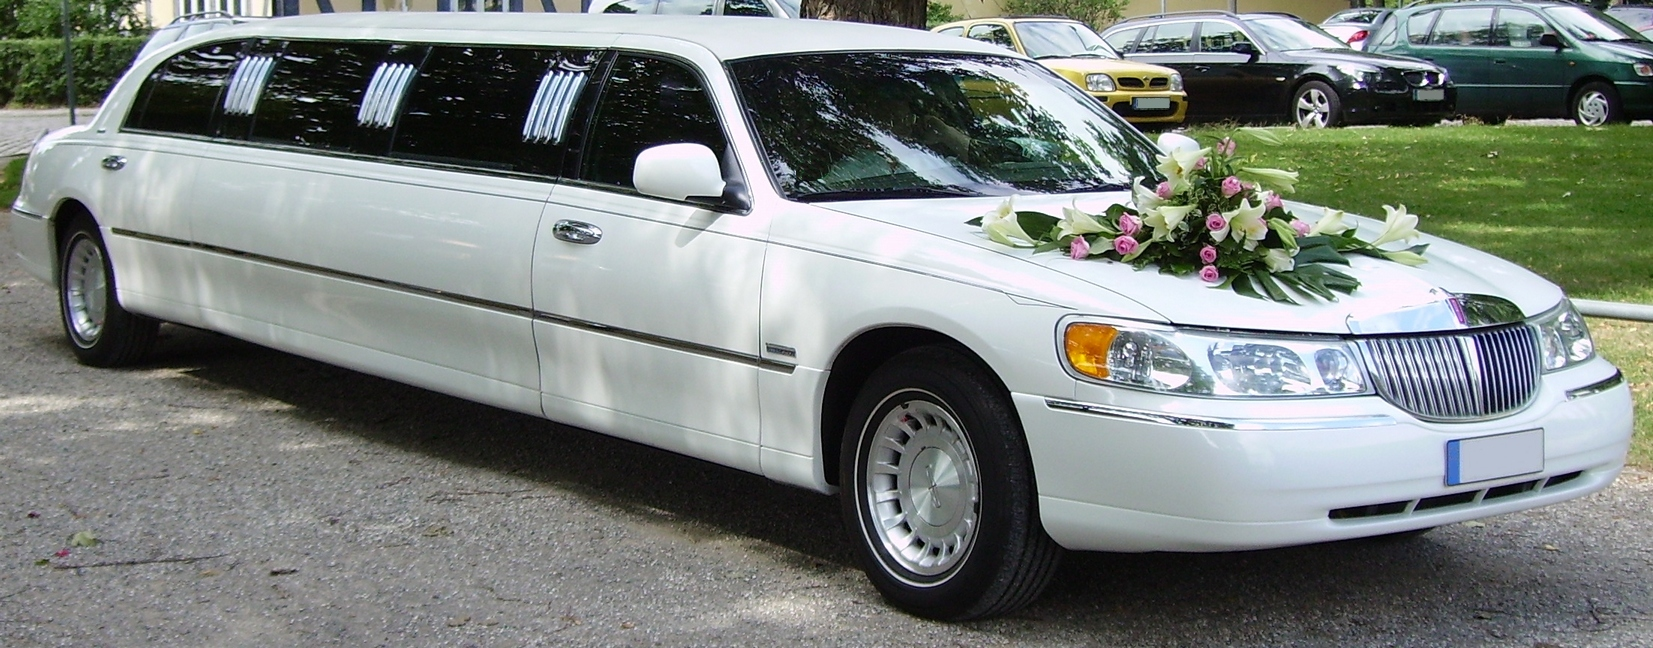 File Lincoln Town Car Limousine Wedding Jpg